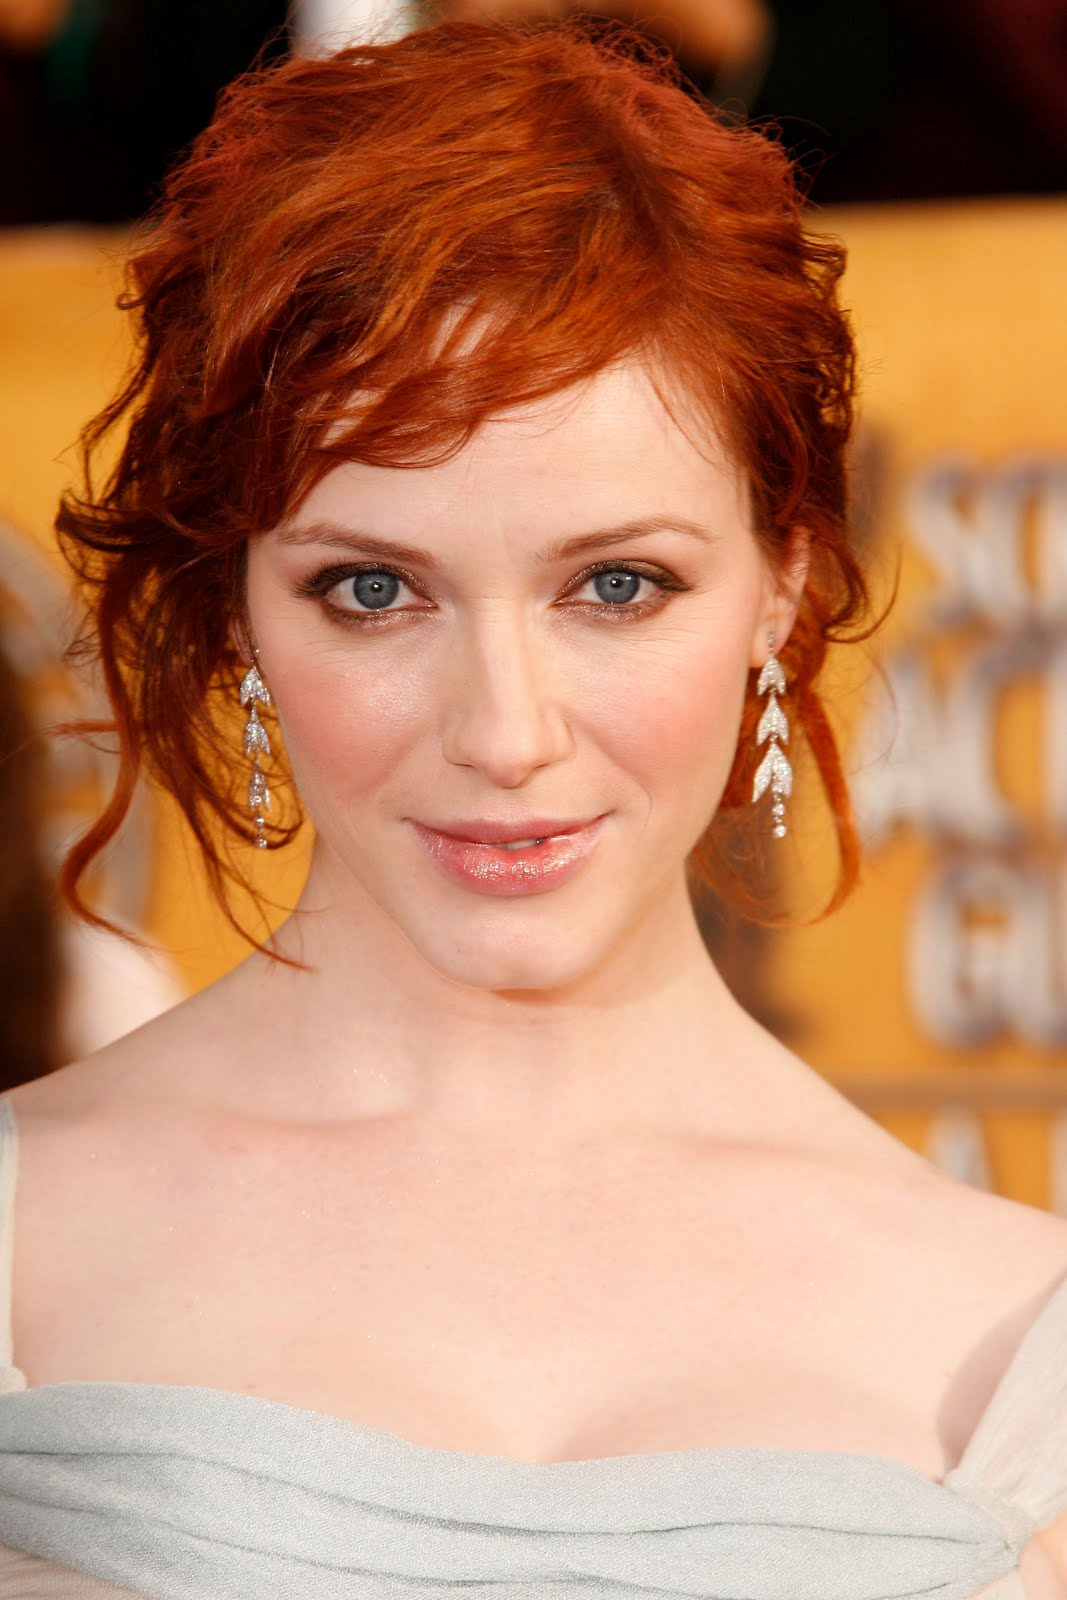 http://3.bp.blogspot.com/-qFPoUni1qro/T0PfzrzD9NI/AAAAAAAABRk/xphdIuXy2VQ/s1600/Christina-Hendricks-Screen-Actors-Guild-Awards-2008-christina-hendricks-8730581-1707-2560.jpg